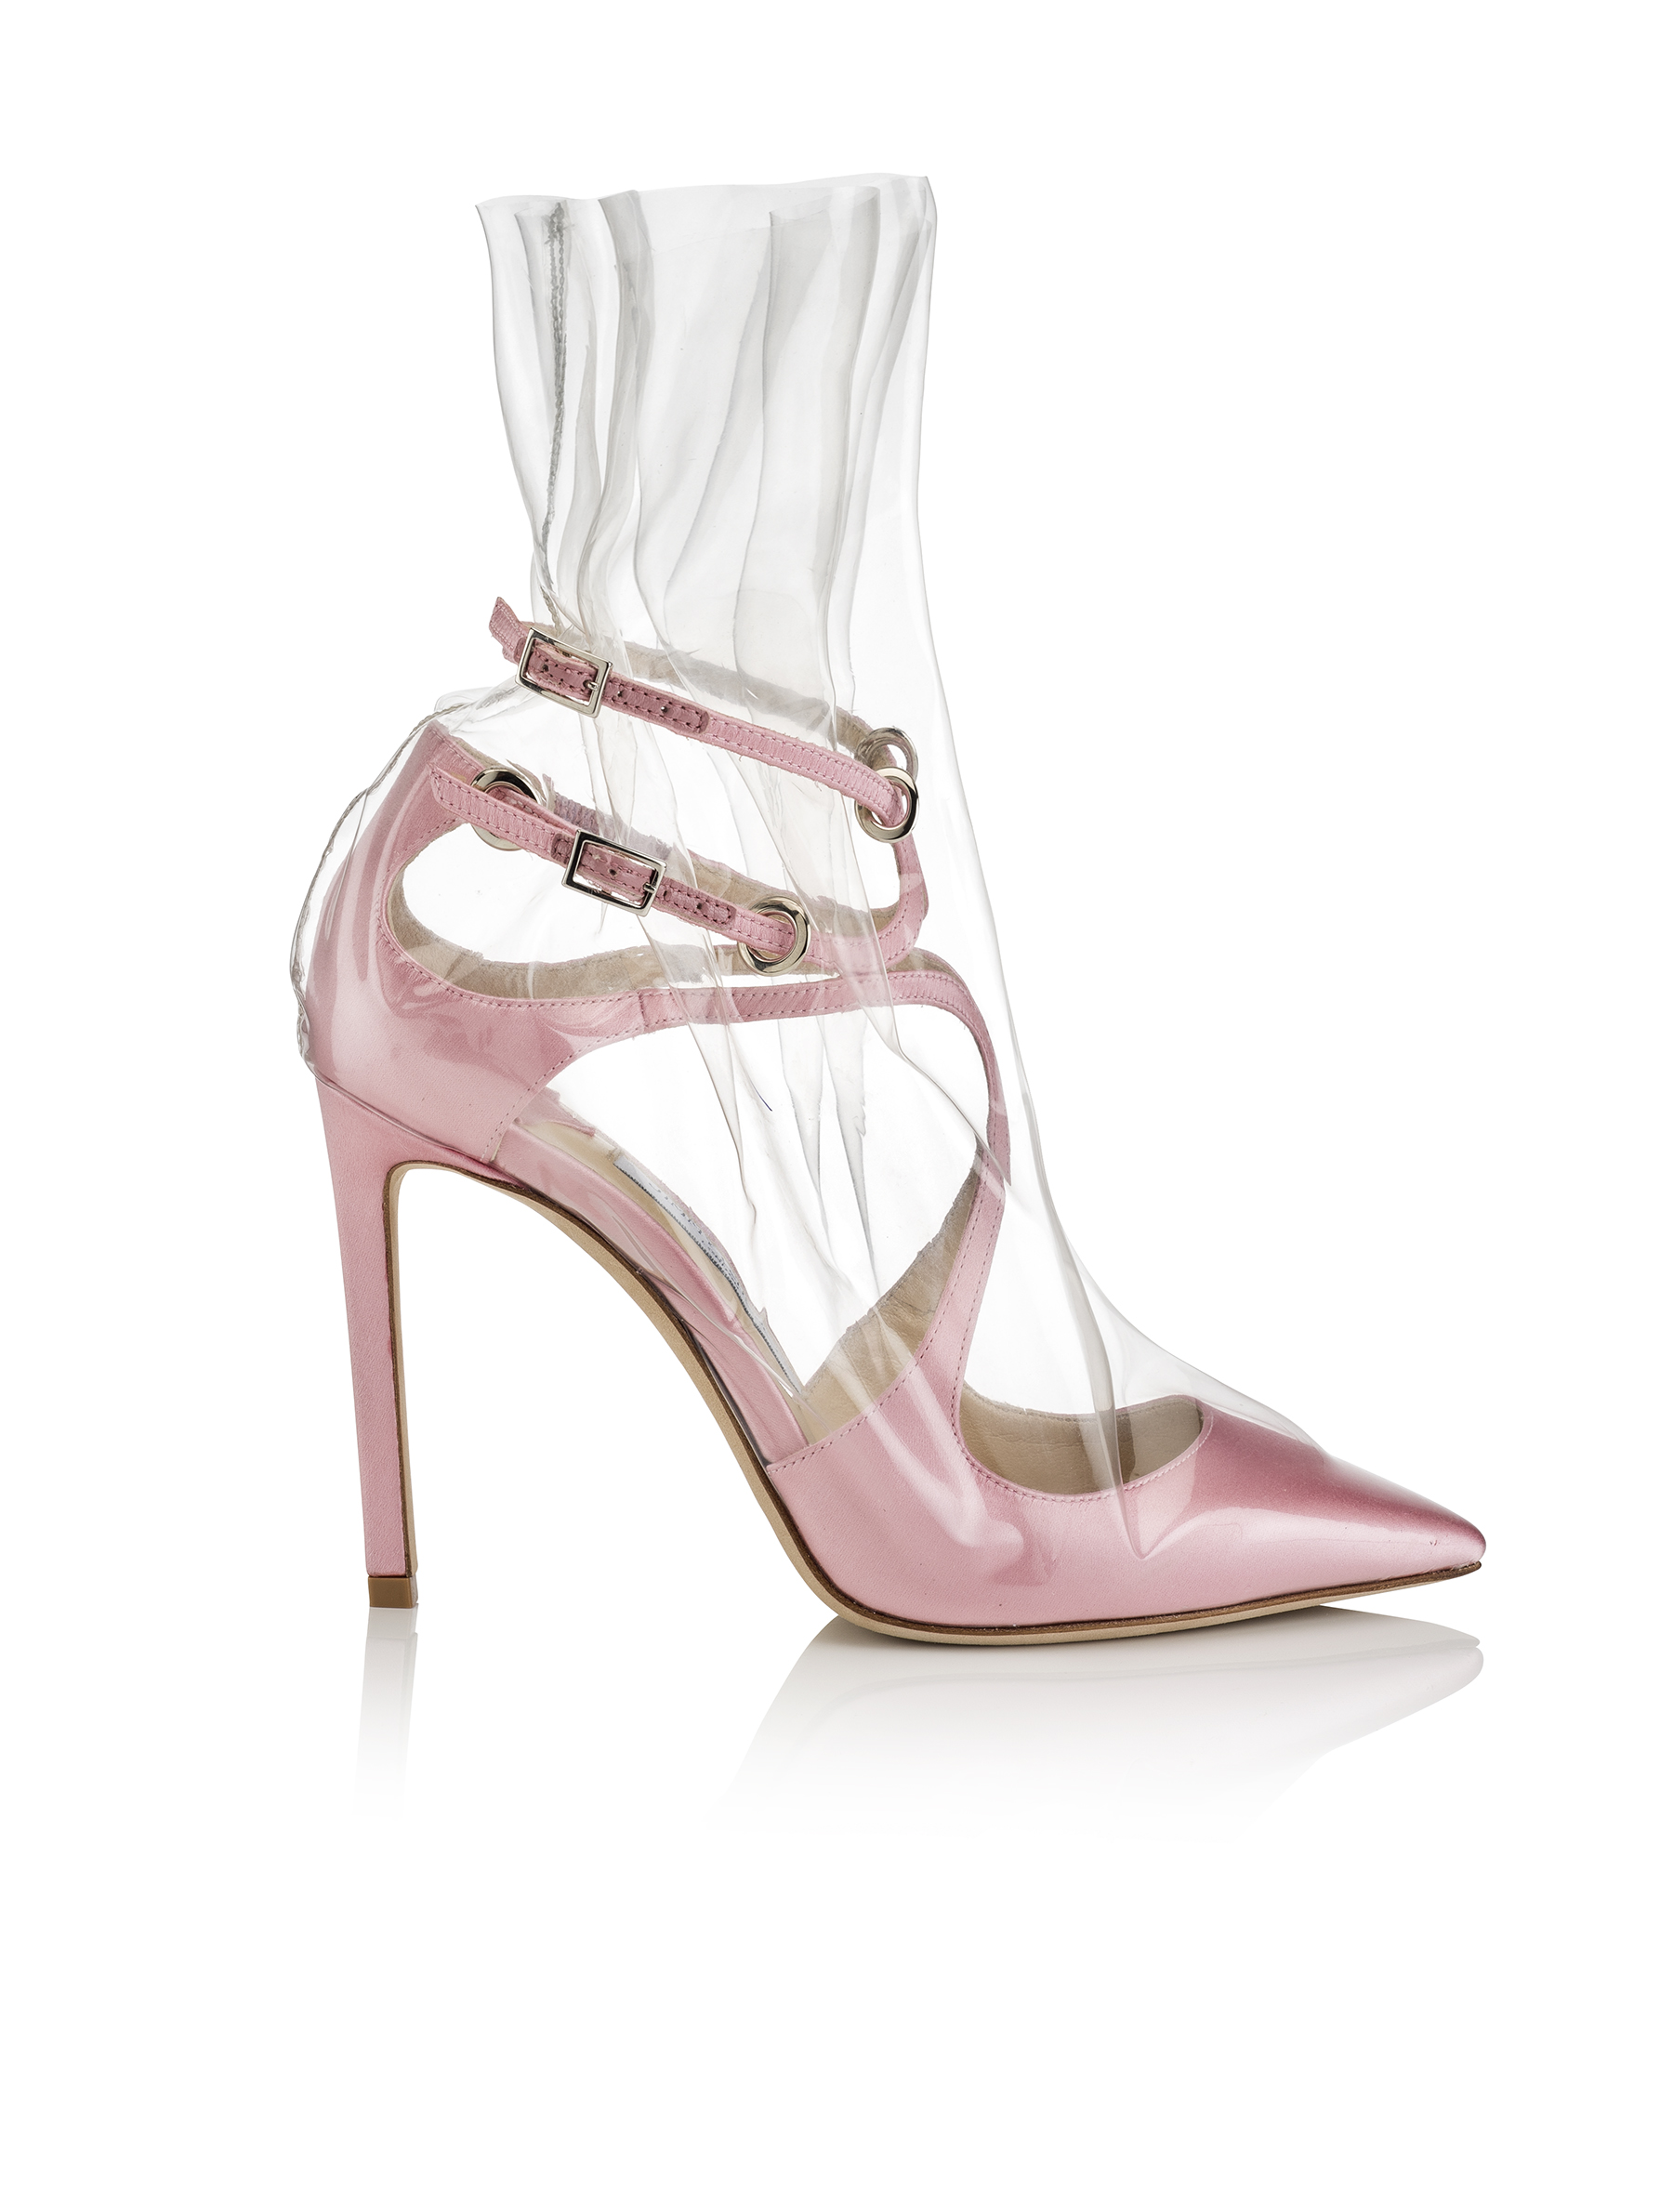 V.COM_OFF-WHITE™ C:O JIMMY CHOO_CLAIRE 100 - SATIN W ROUCHED TPU OVERLAY - PINK, TRANSPARENT